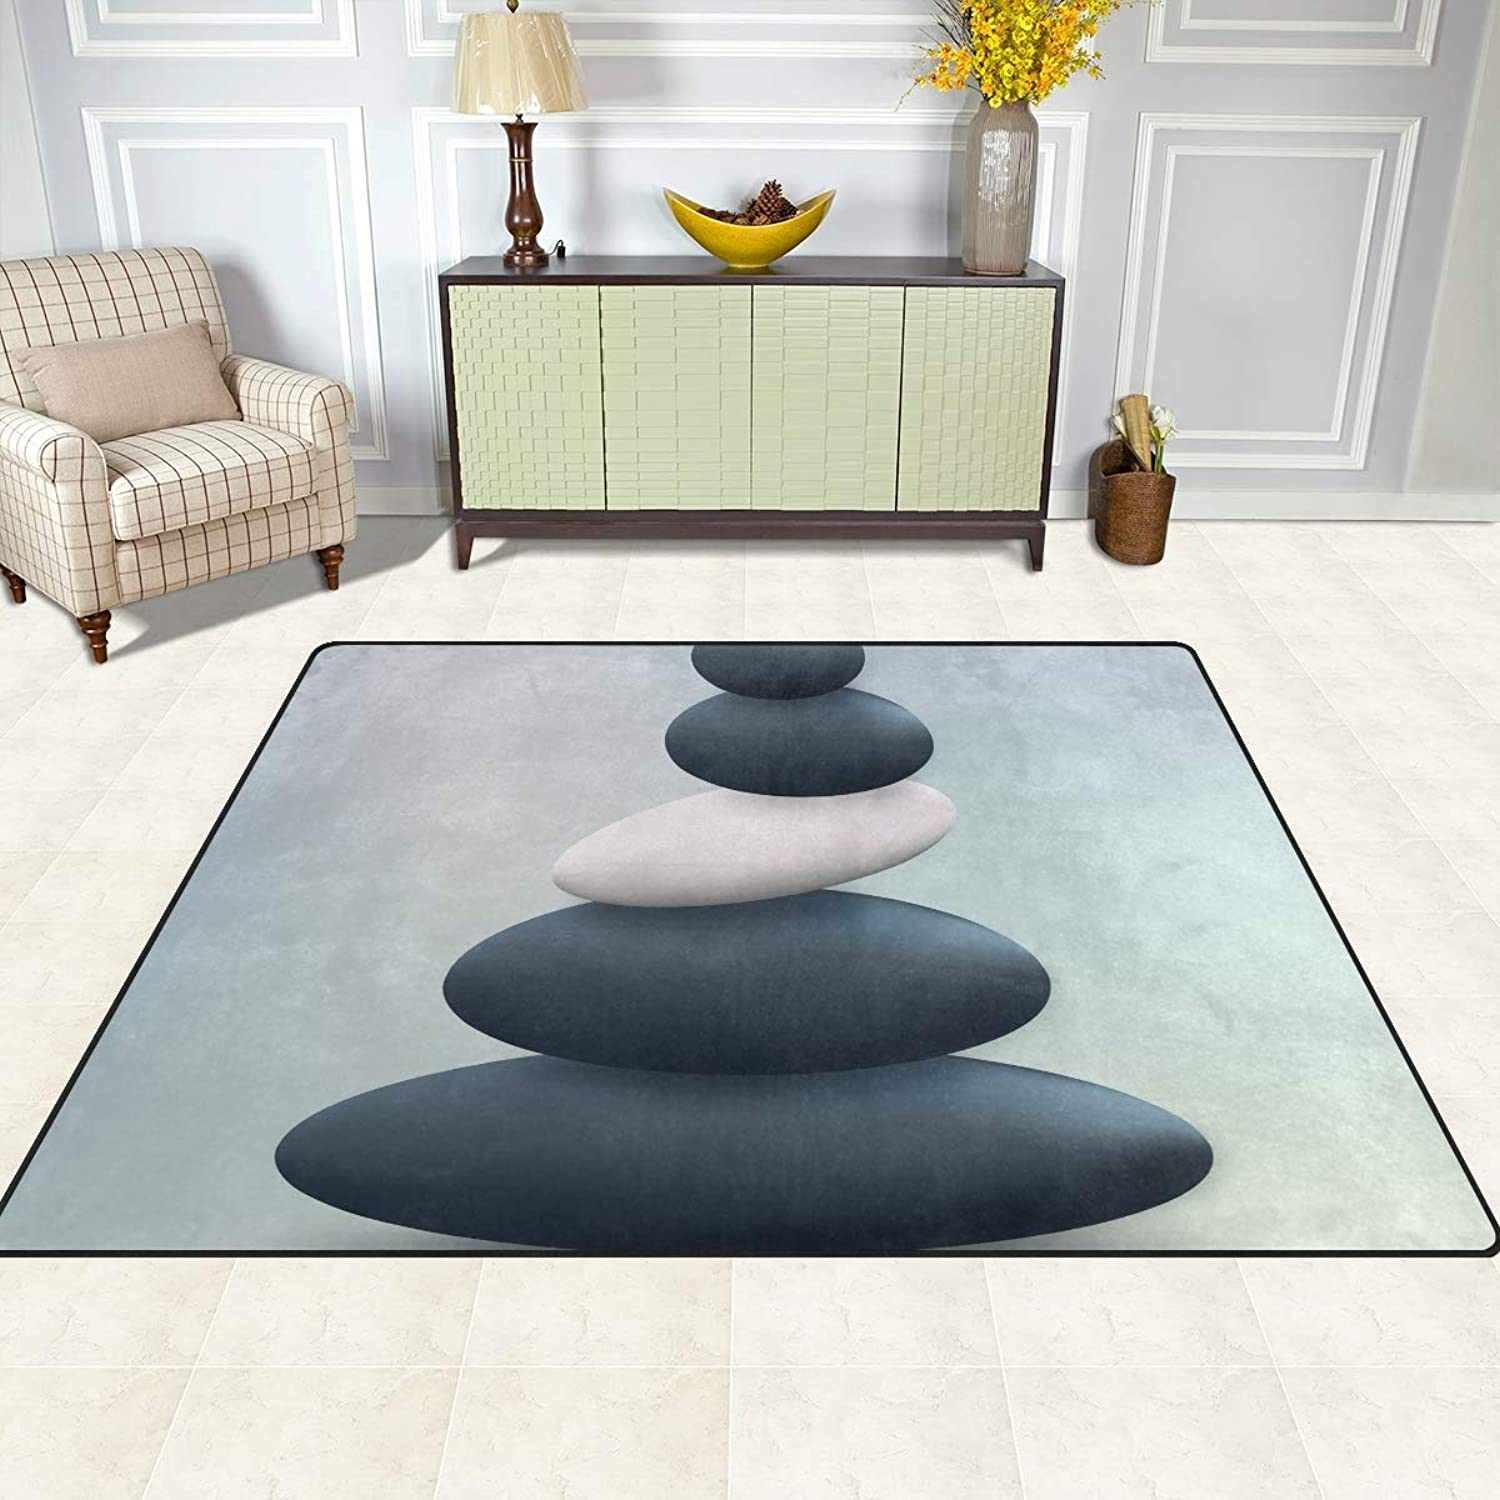 FAJRO Spa Stone Rugs for entryway Doormat Area Rug Multipattern Door Mat shoes Scraper Home Dec Anti-Slip Indoor Outdoor